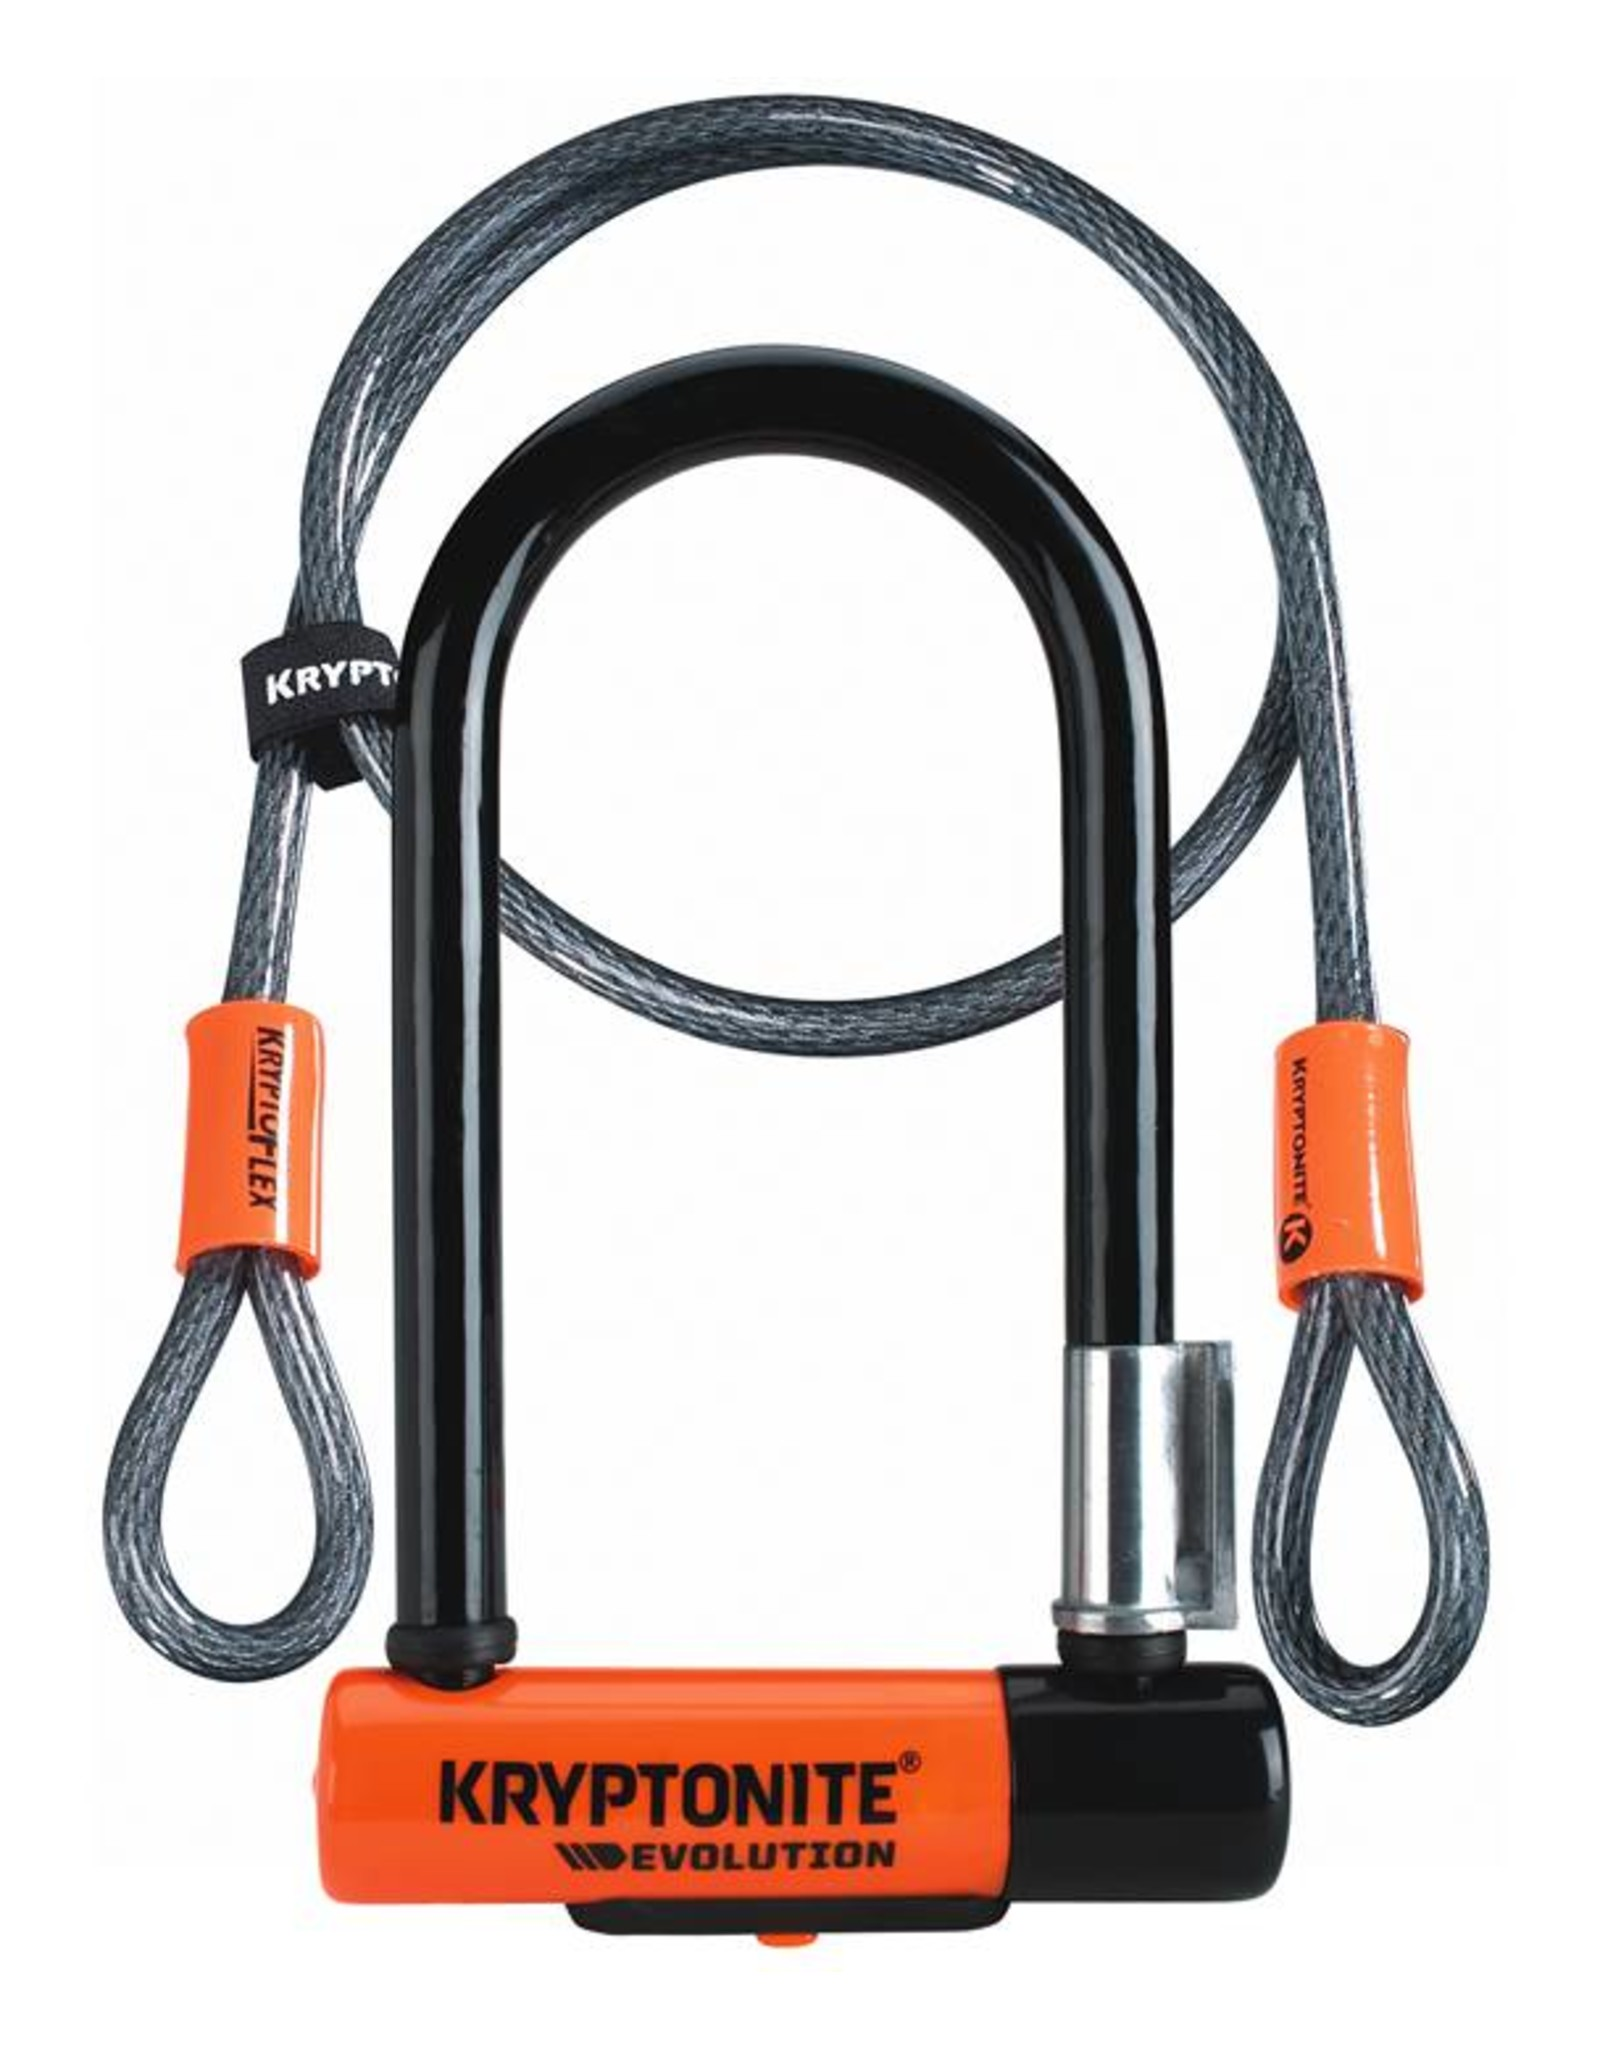 Kryptonite New-U Evolution Lock W/ Cable